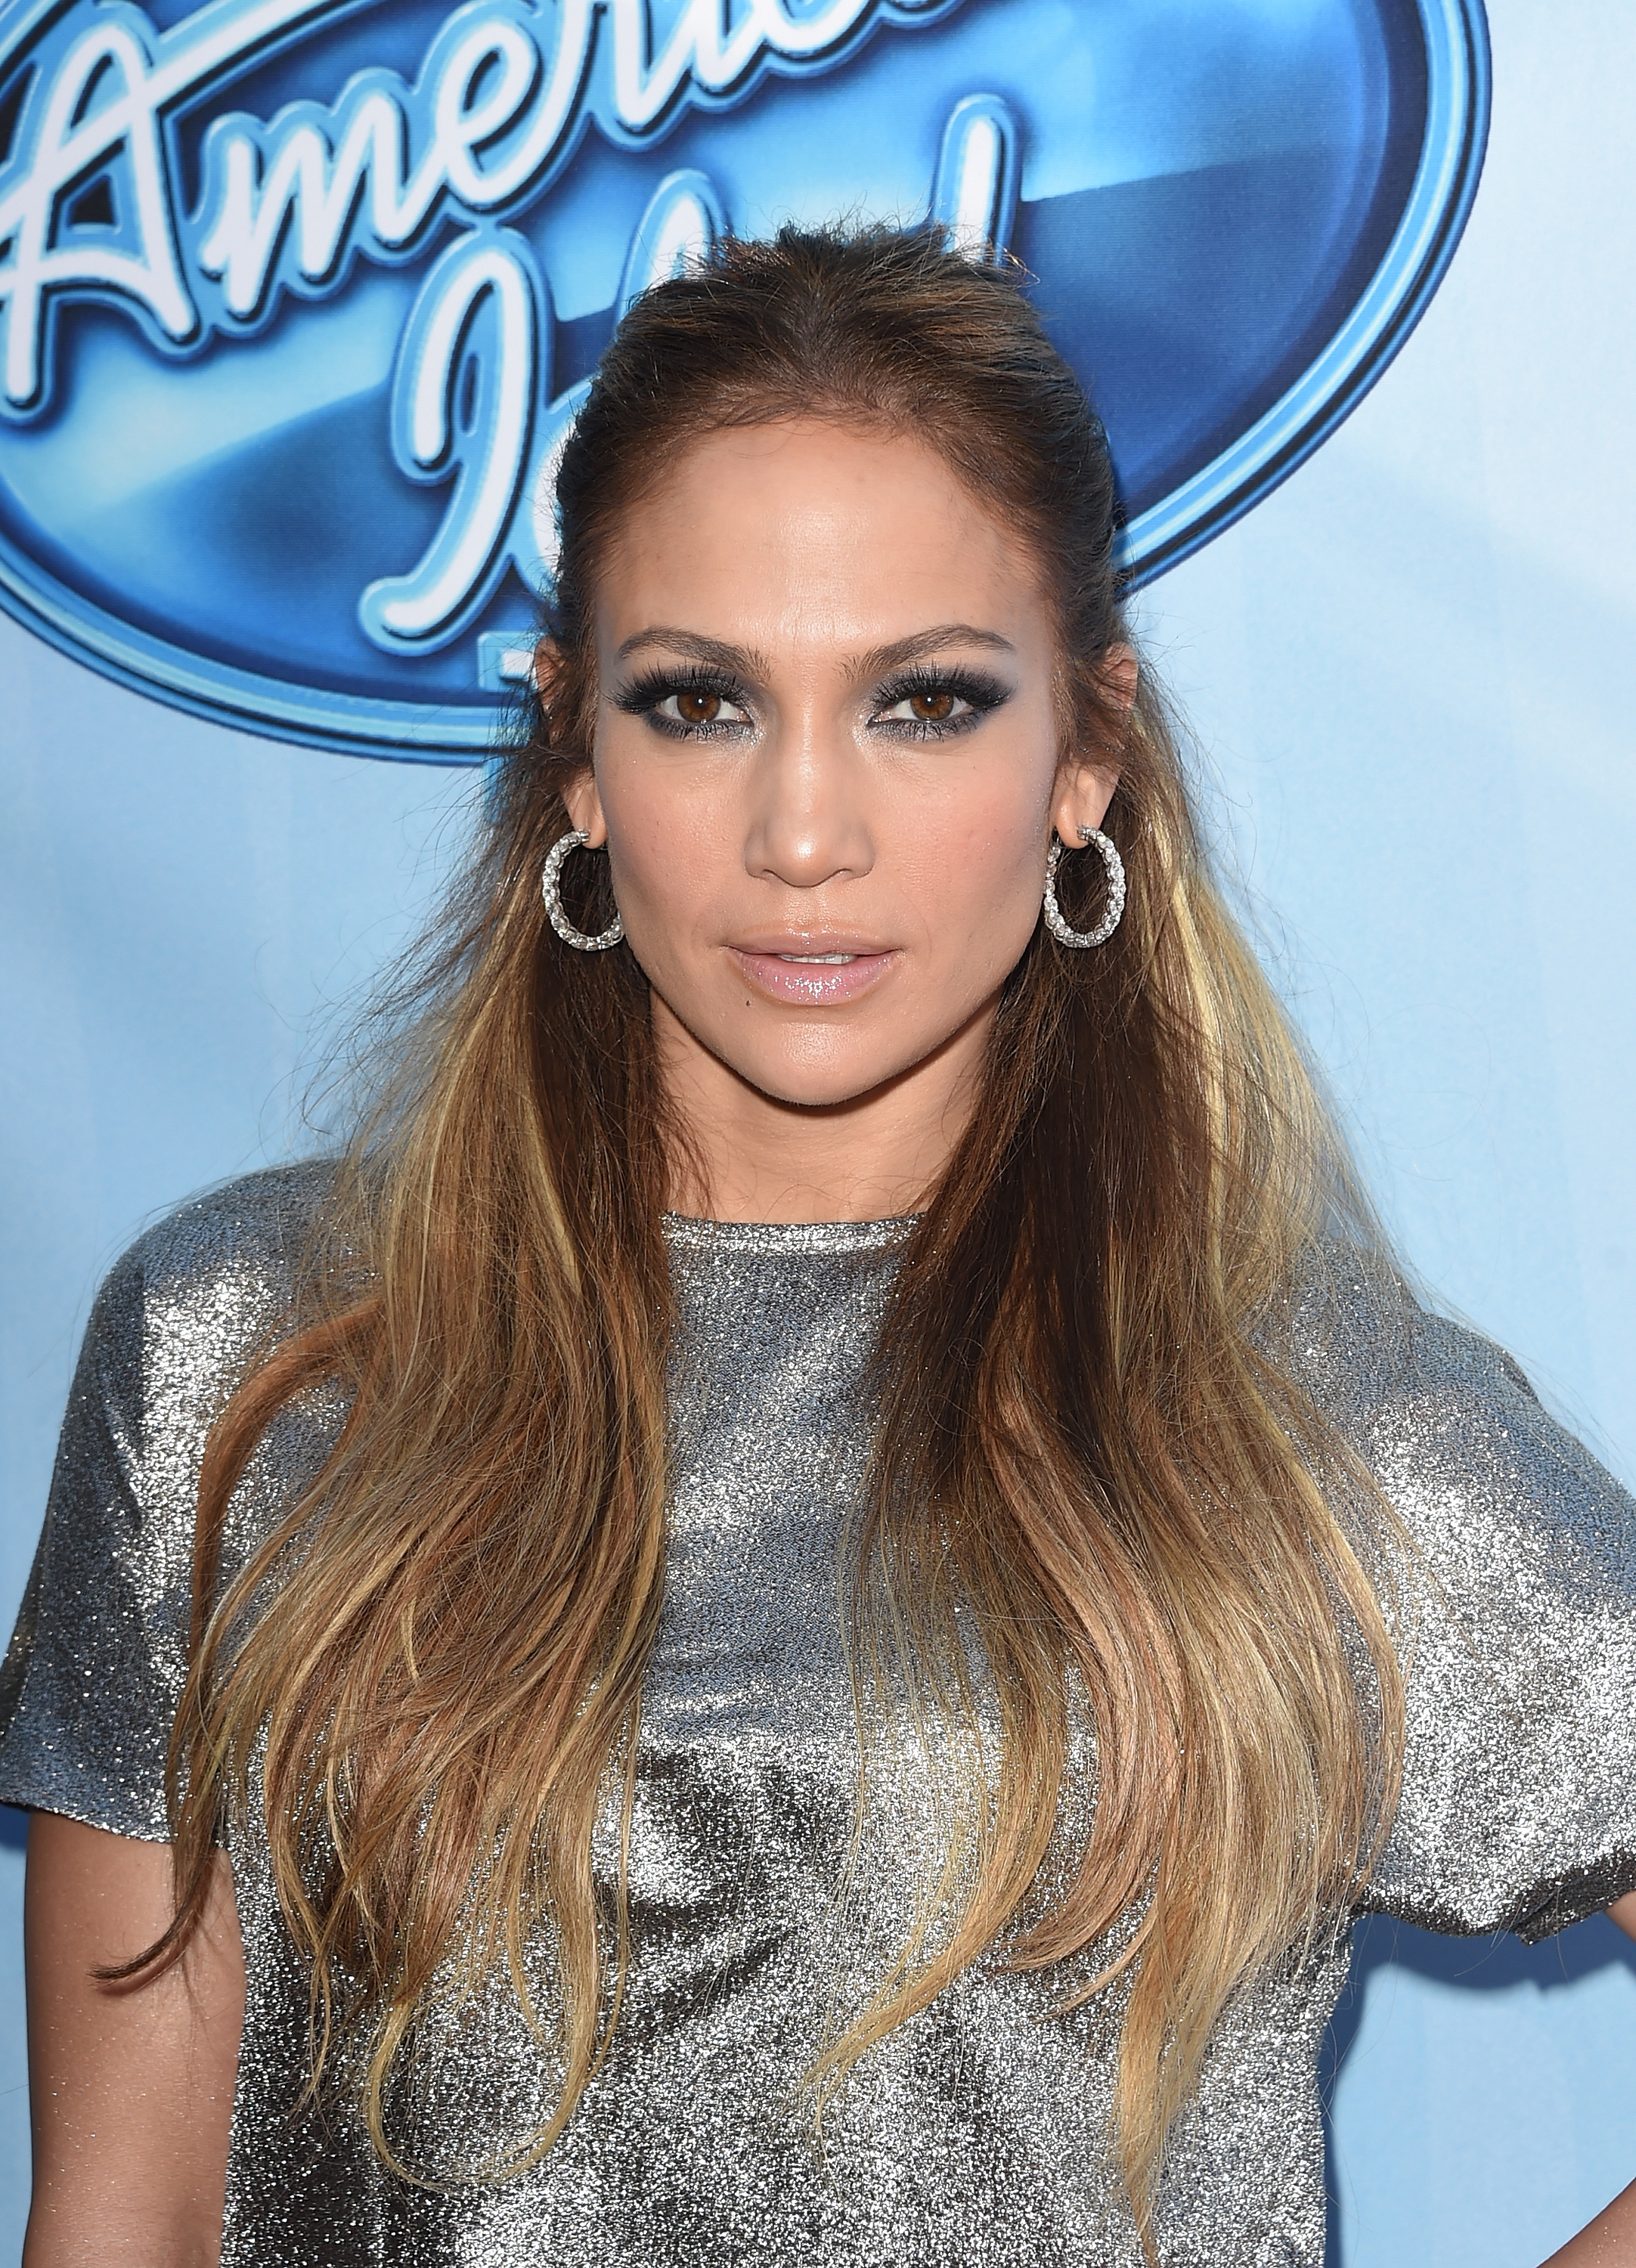 Singer Jennifer Lopez at  American Idol XIV  Red Carpet Event in Los Angeles, Ca. on Dec. 9, 2014.